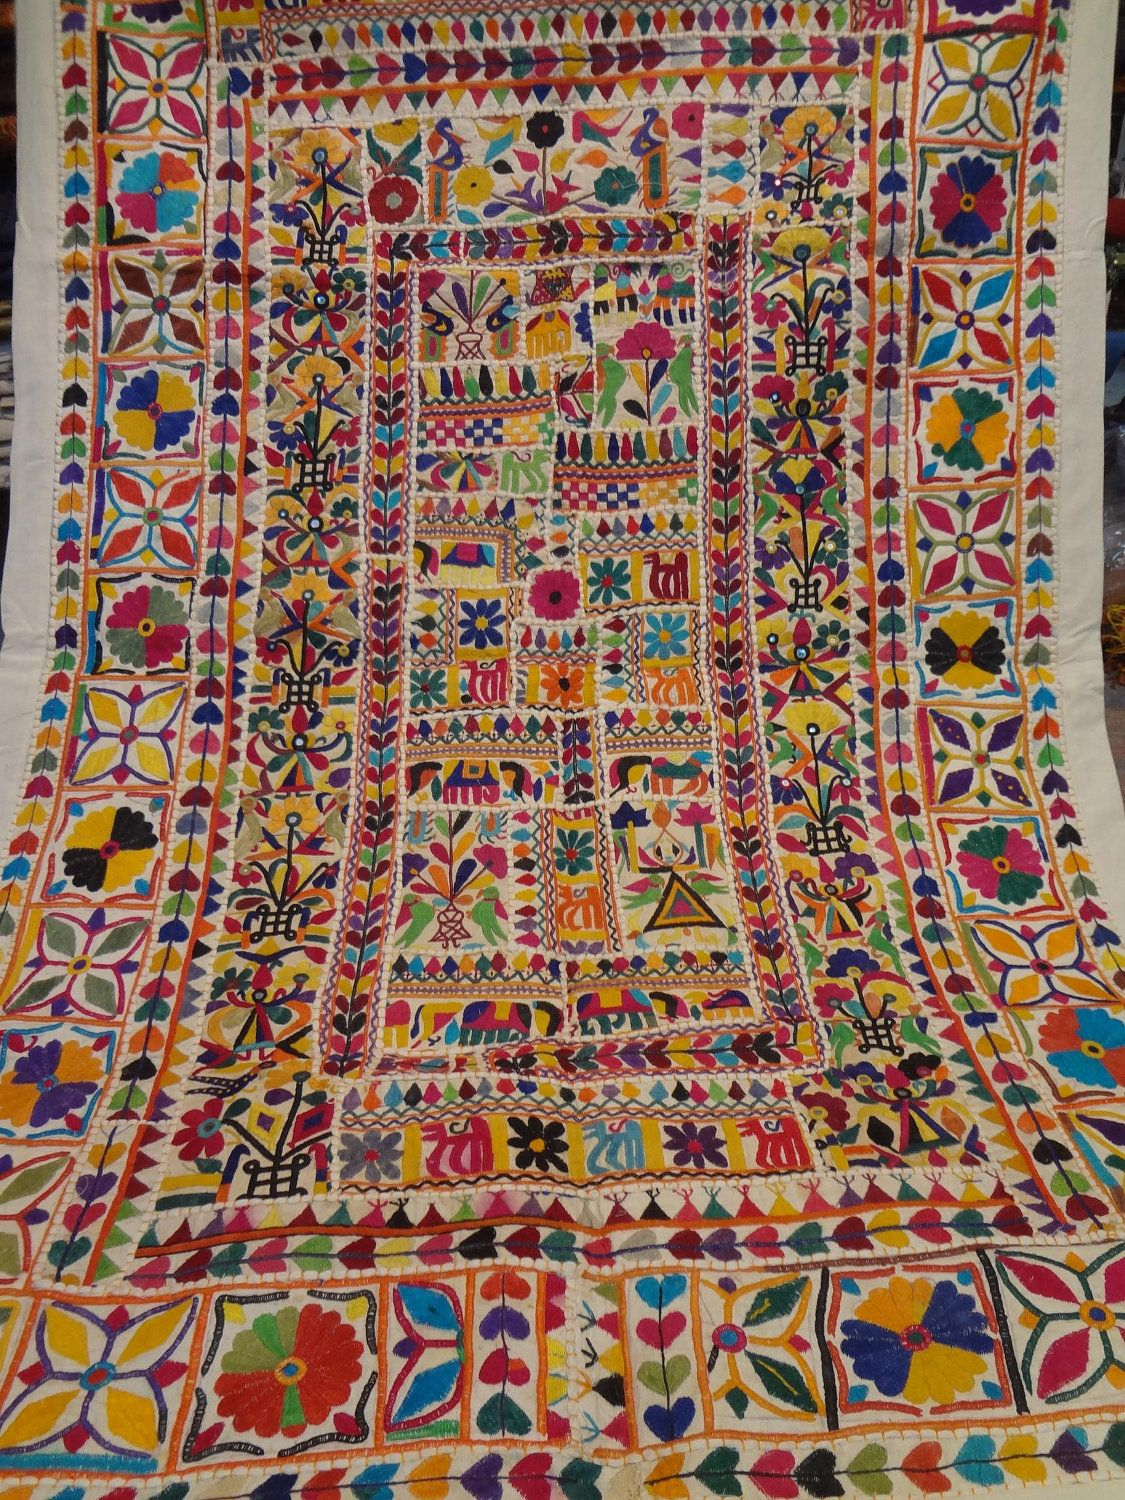 Handmade Old Patchwork Tapestry Made From Old Textiles From India